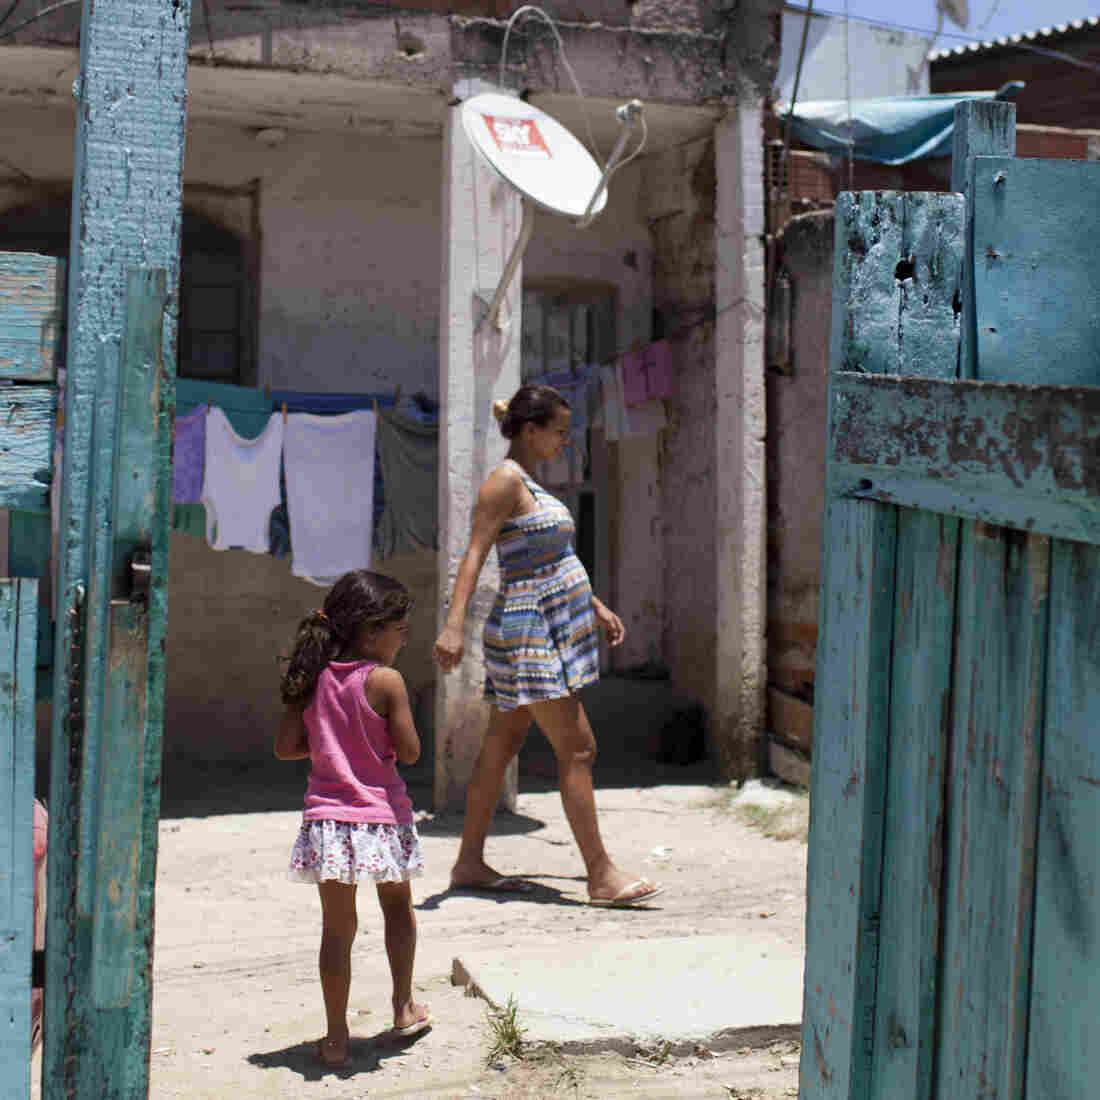 As Brazil Gears Up For Olympics, Some Poor Families Get Moved Out